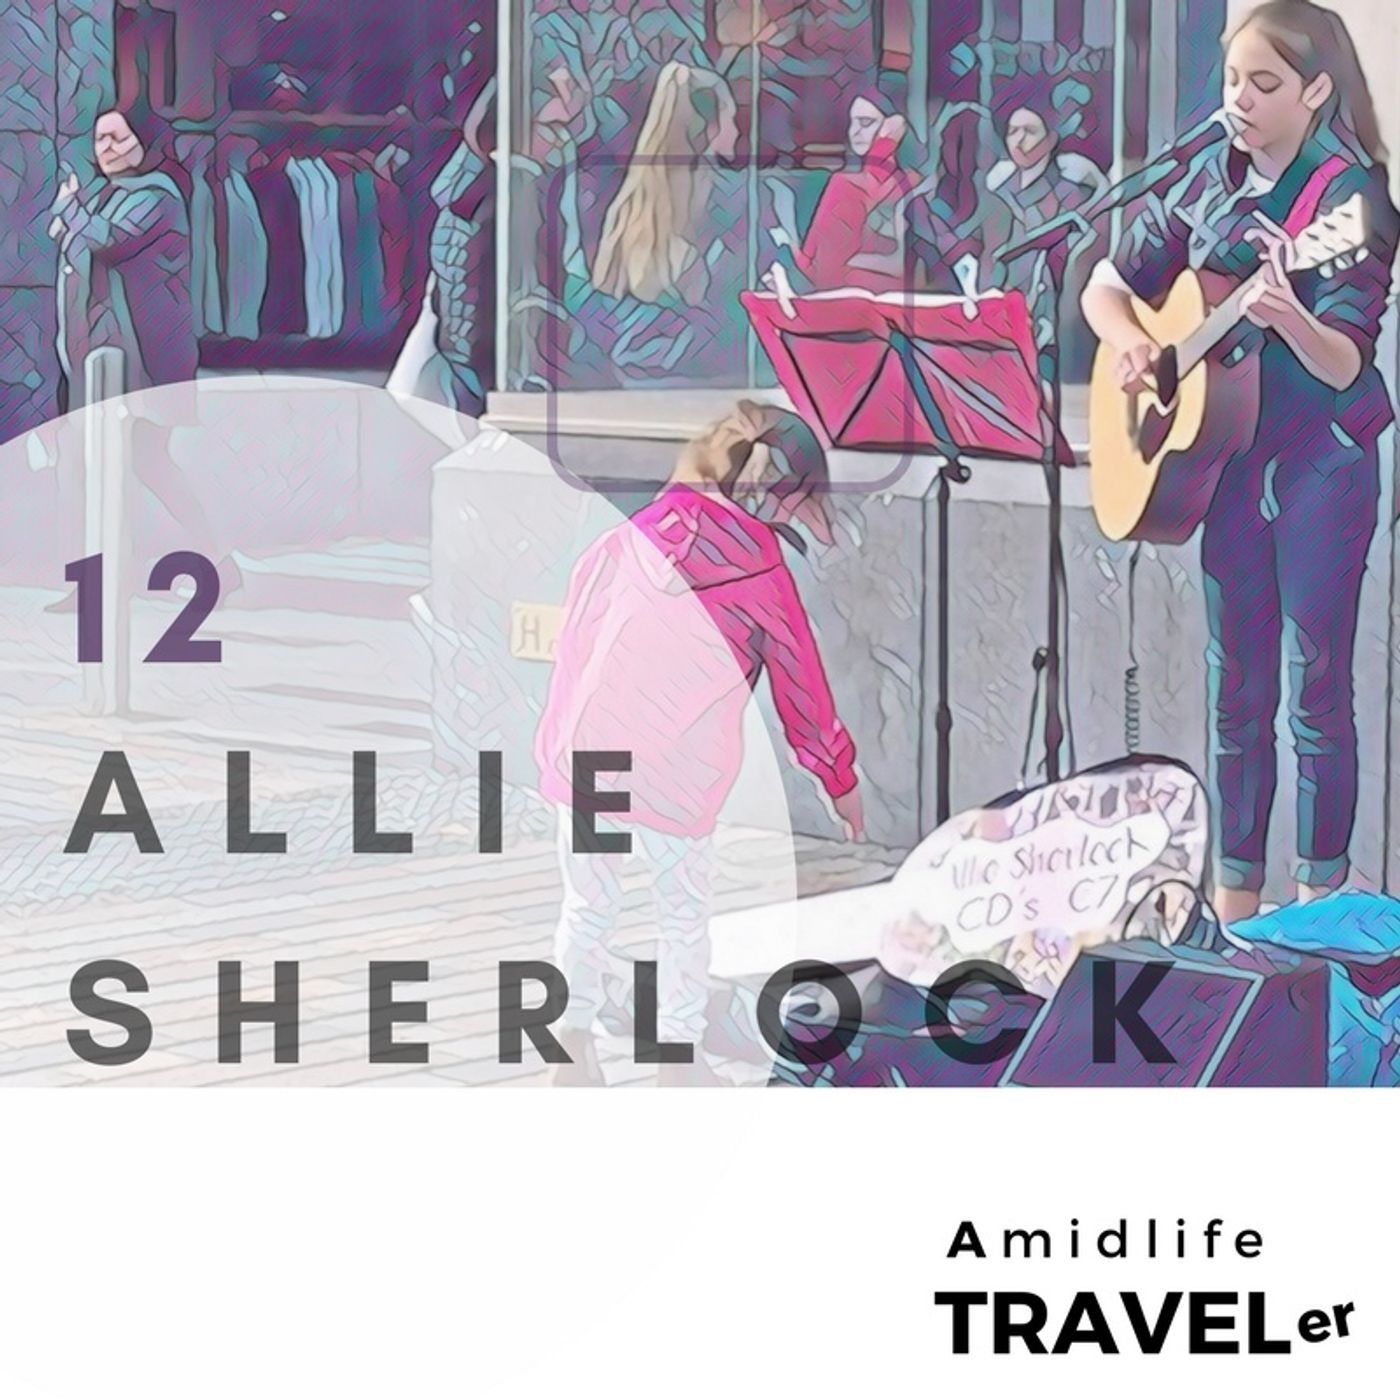 Remarkable Allie Sherlock 12 Year Old Street Musician from Cork Ireland